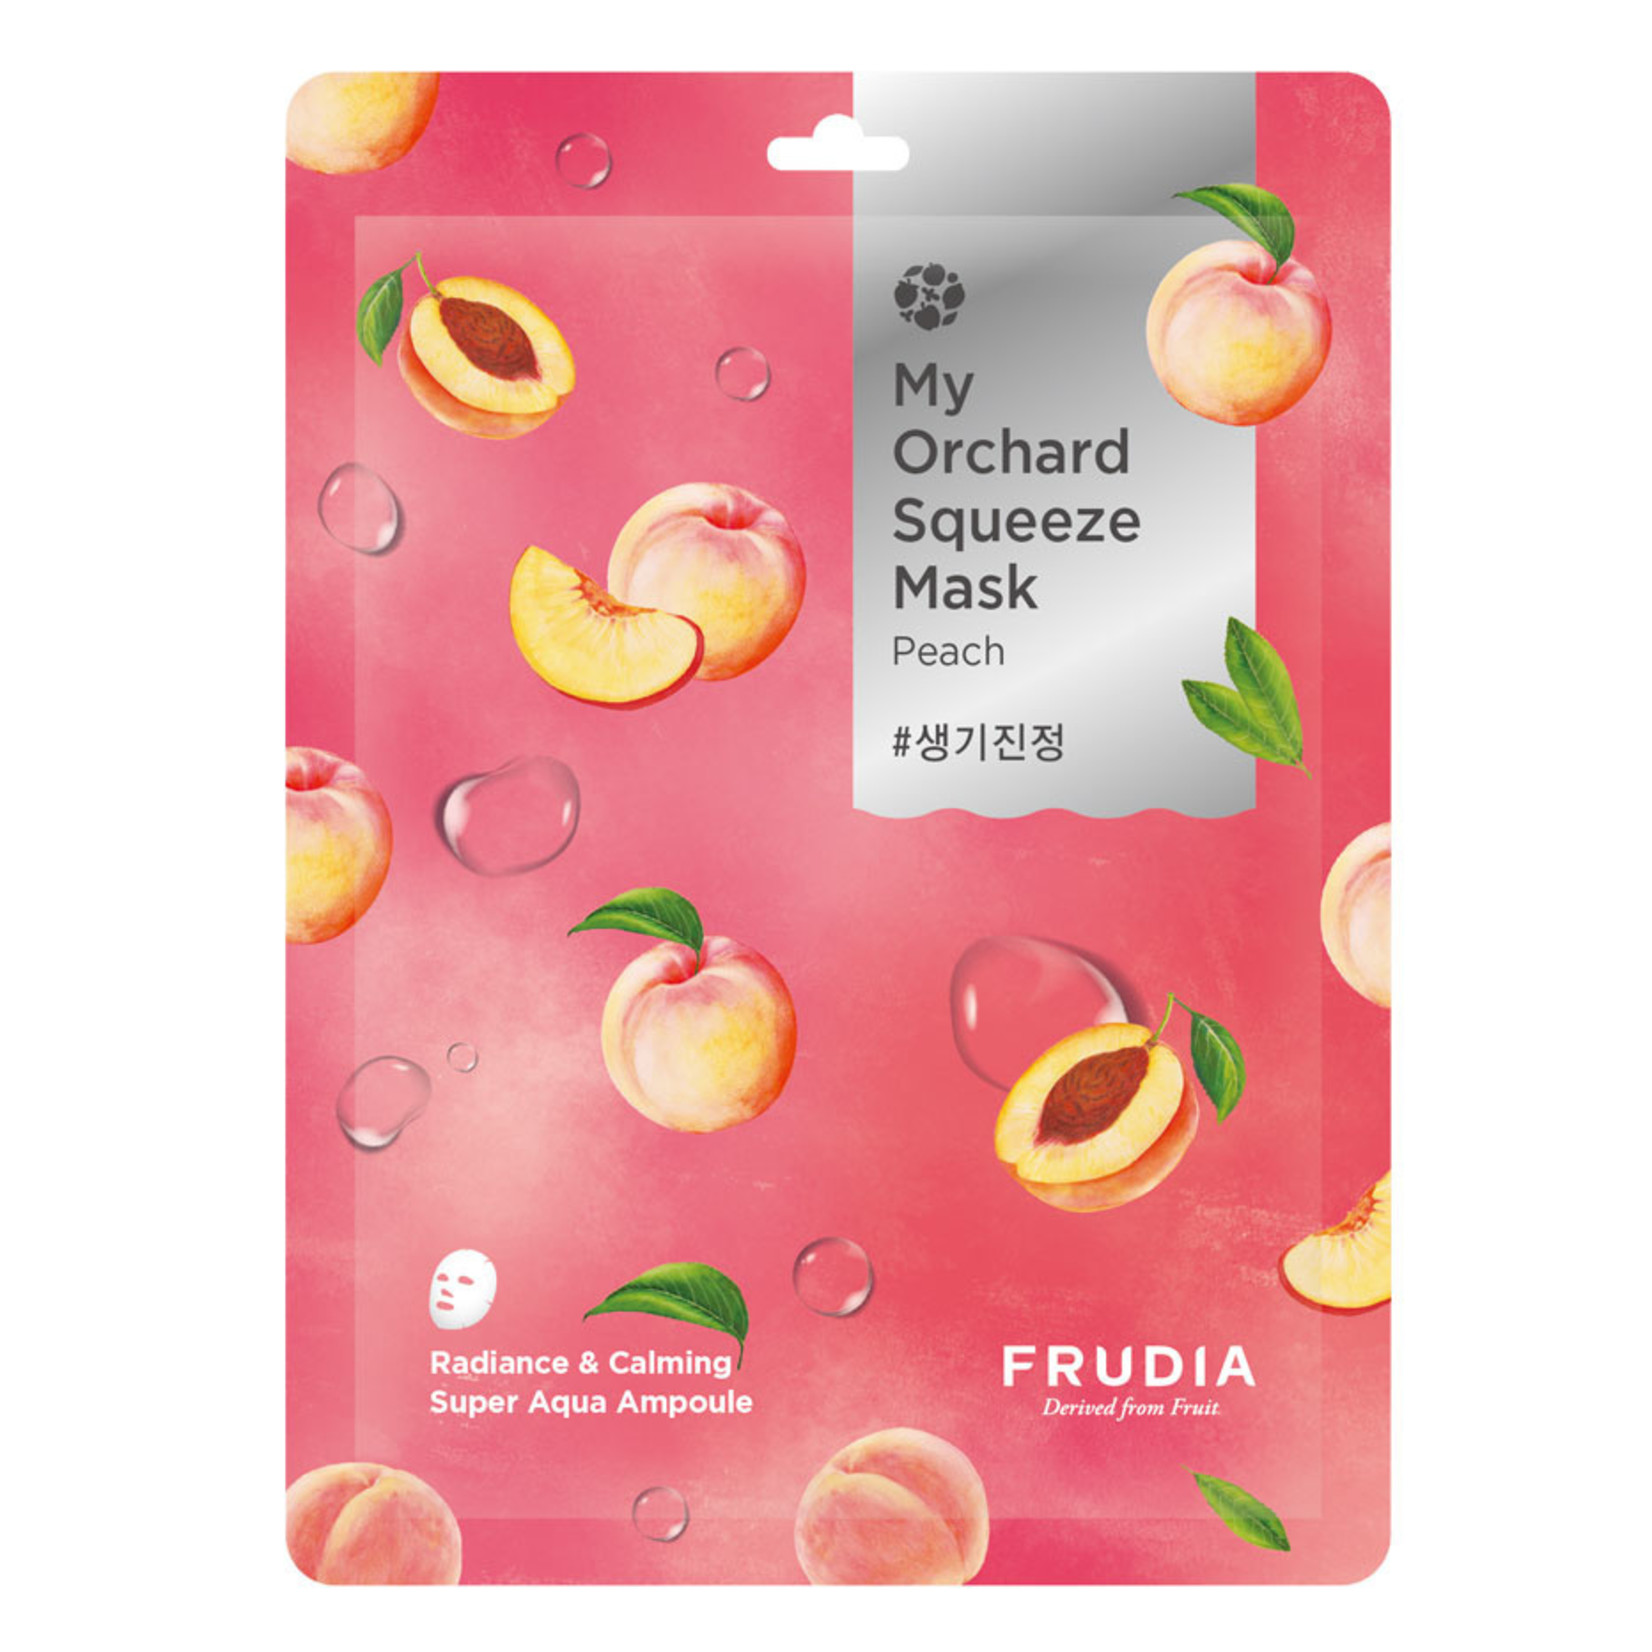 Frudia My Orchard Squeeze Mask Peach 10pcs